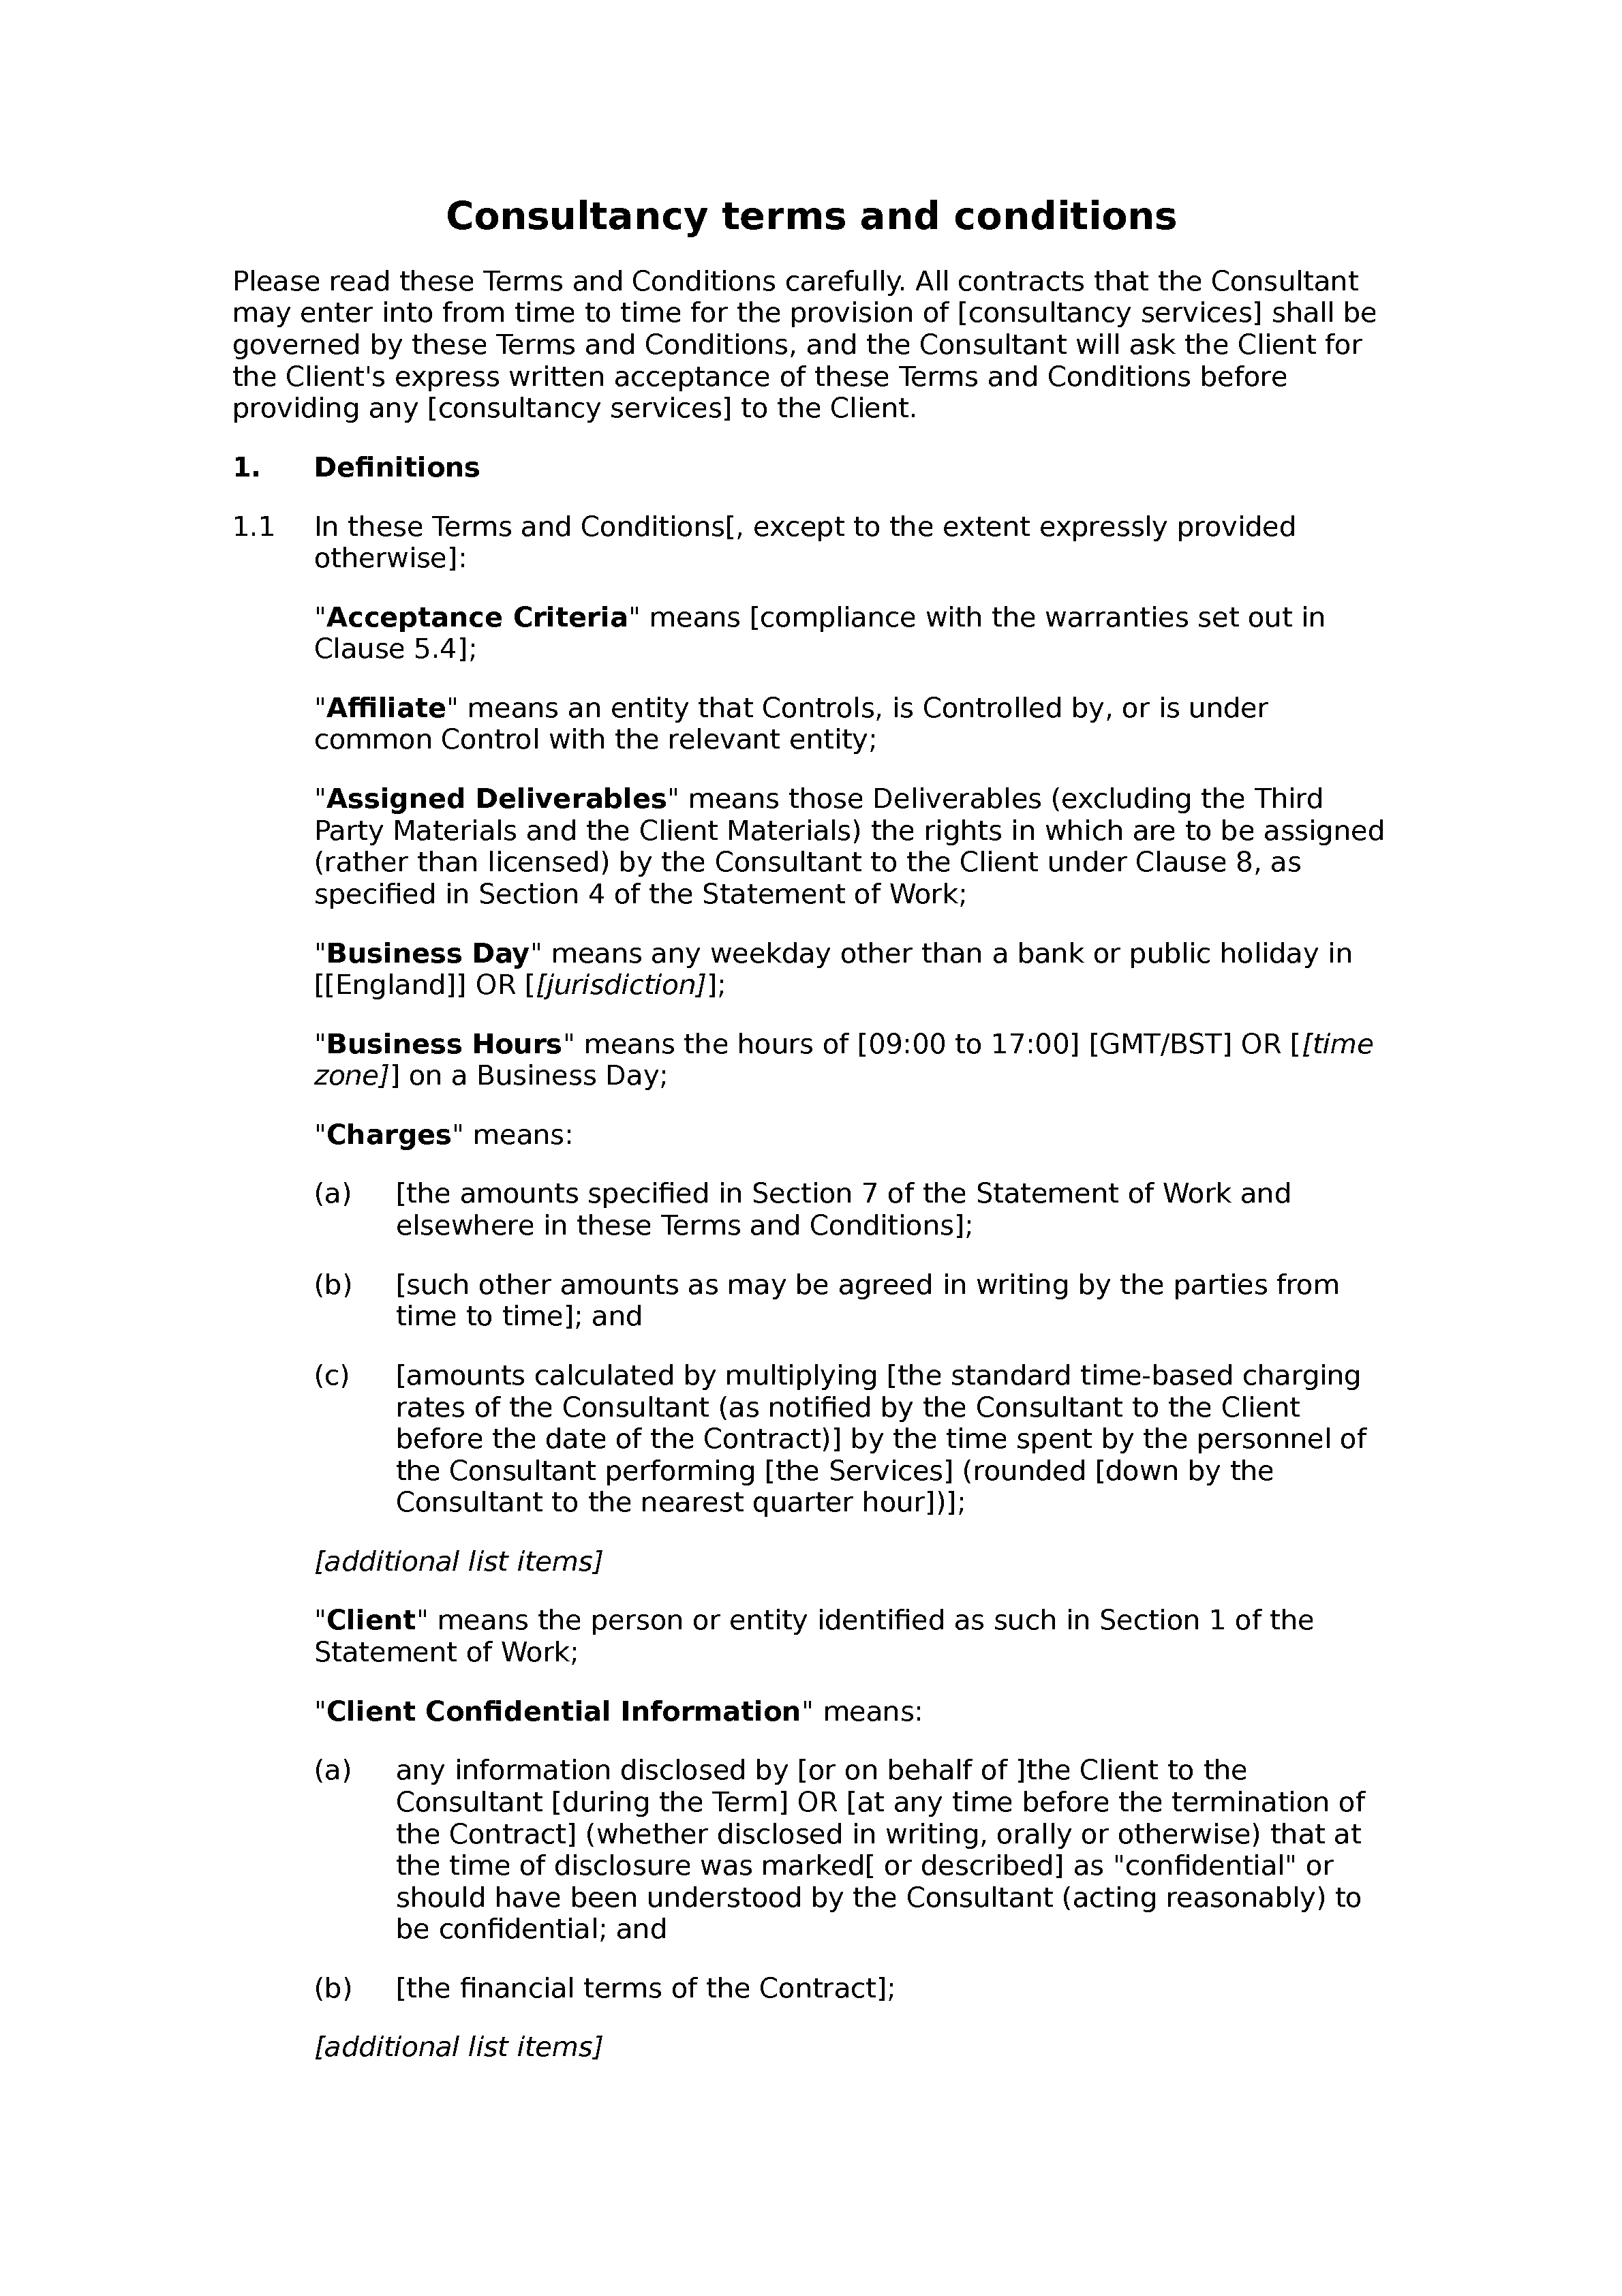 consulting terms and conditions template - consultancy terms and conditions premium docular